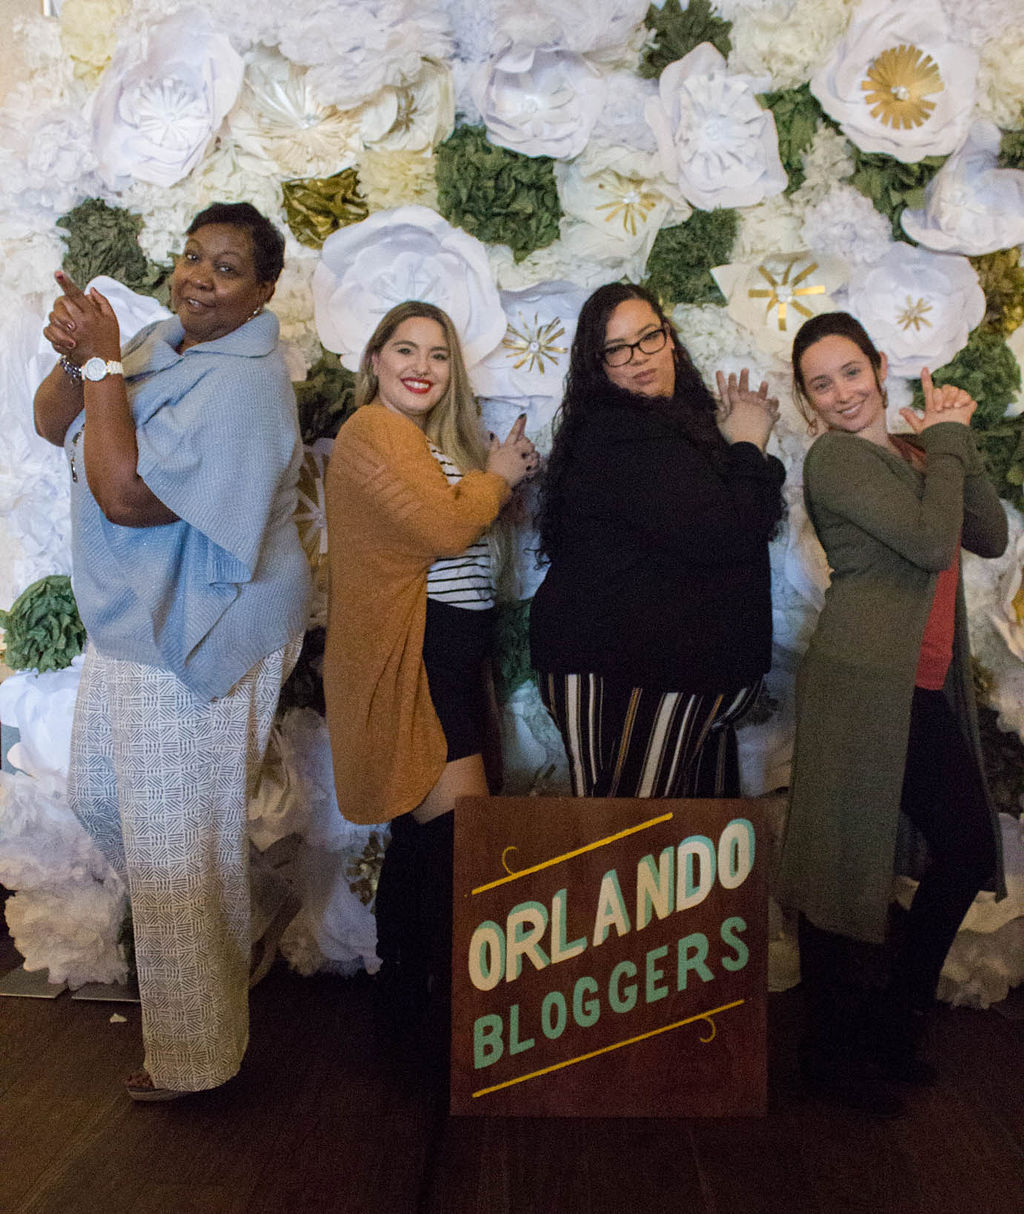 Orlando bloggers of the blogger union chapter officers